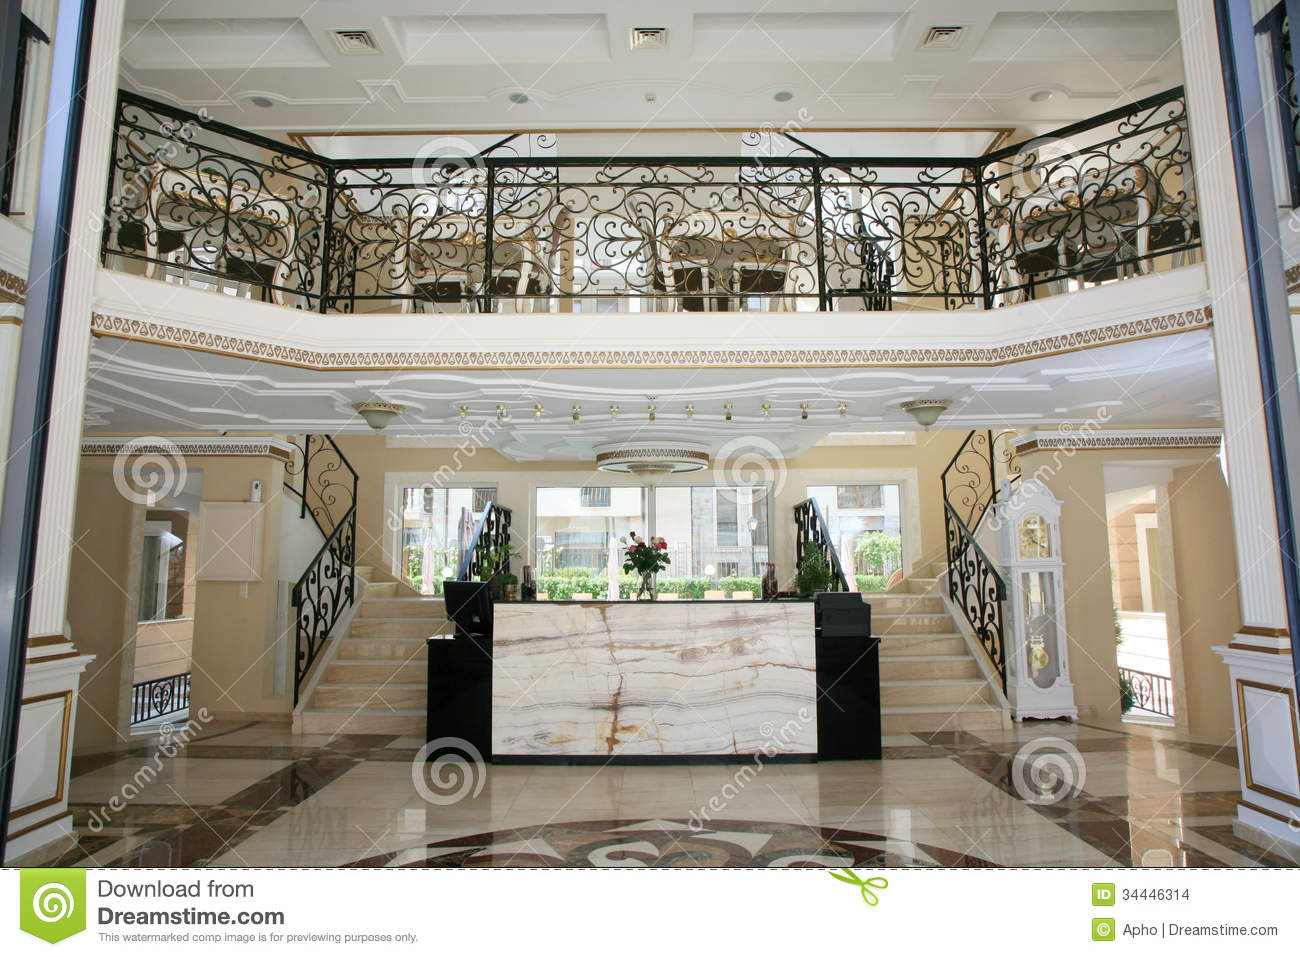 luxury hotel interior stock images - image: 34446314